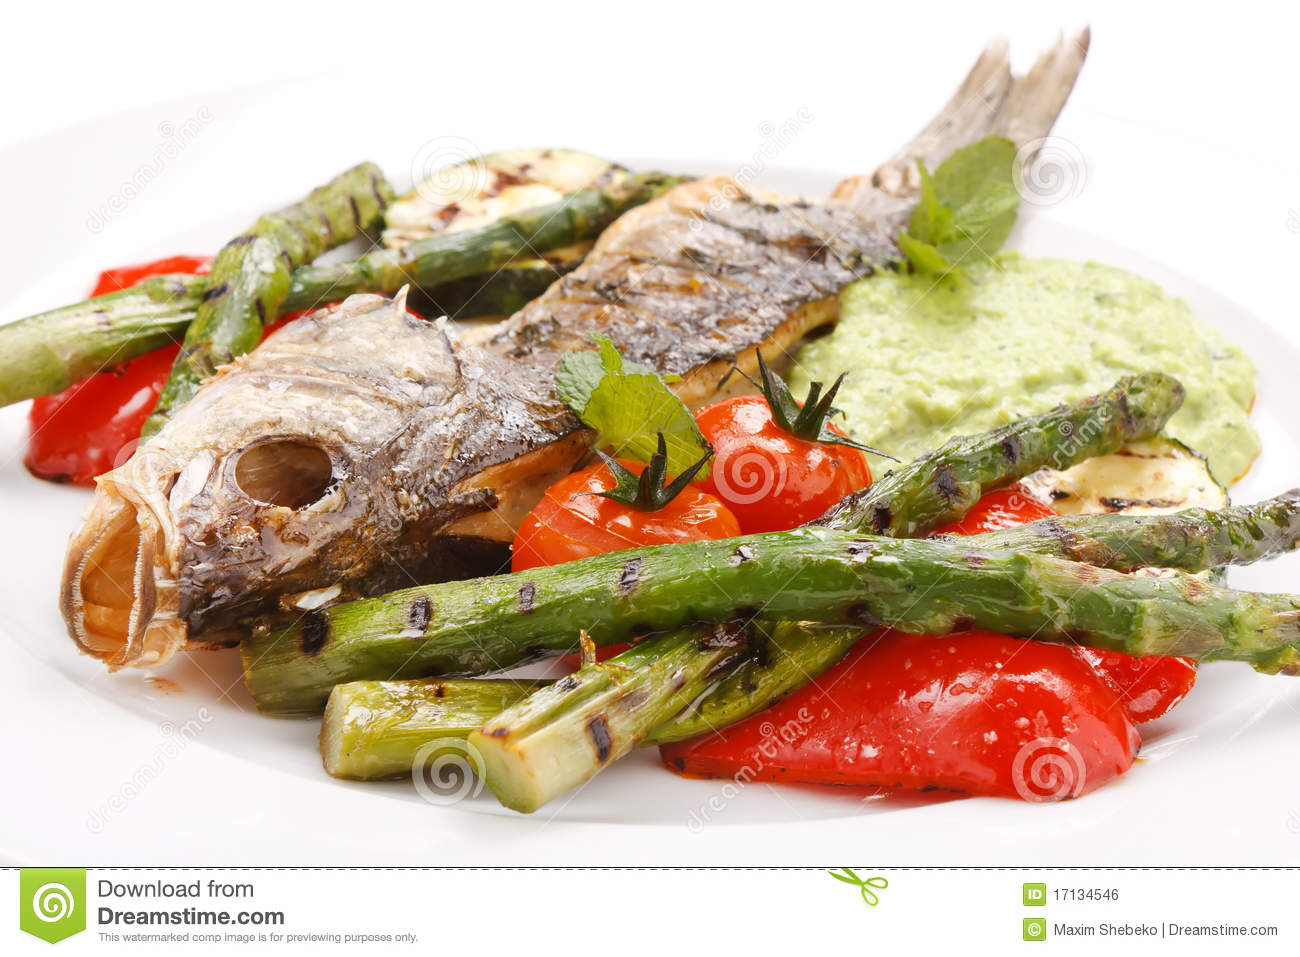 Fish with vegetables royalty free stock image image for What vegetables go with fish